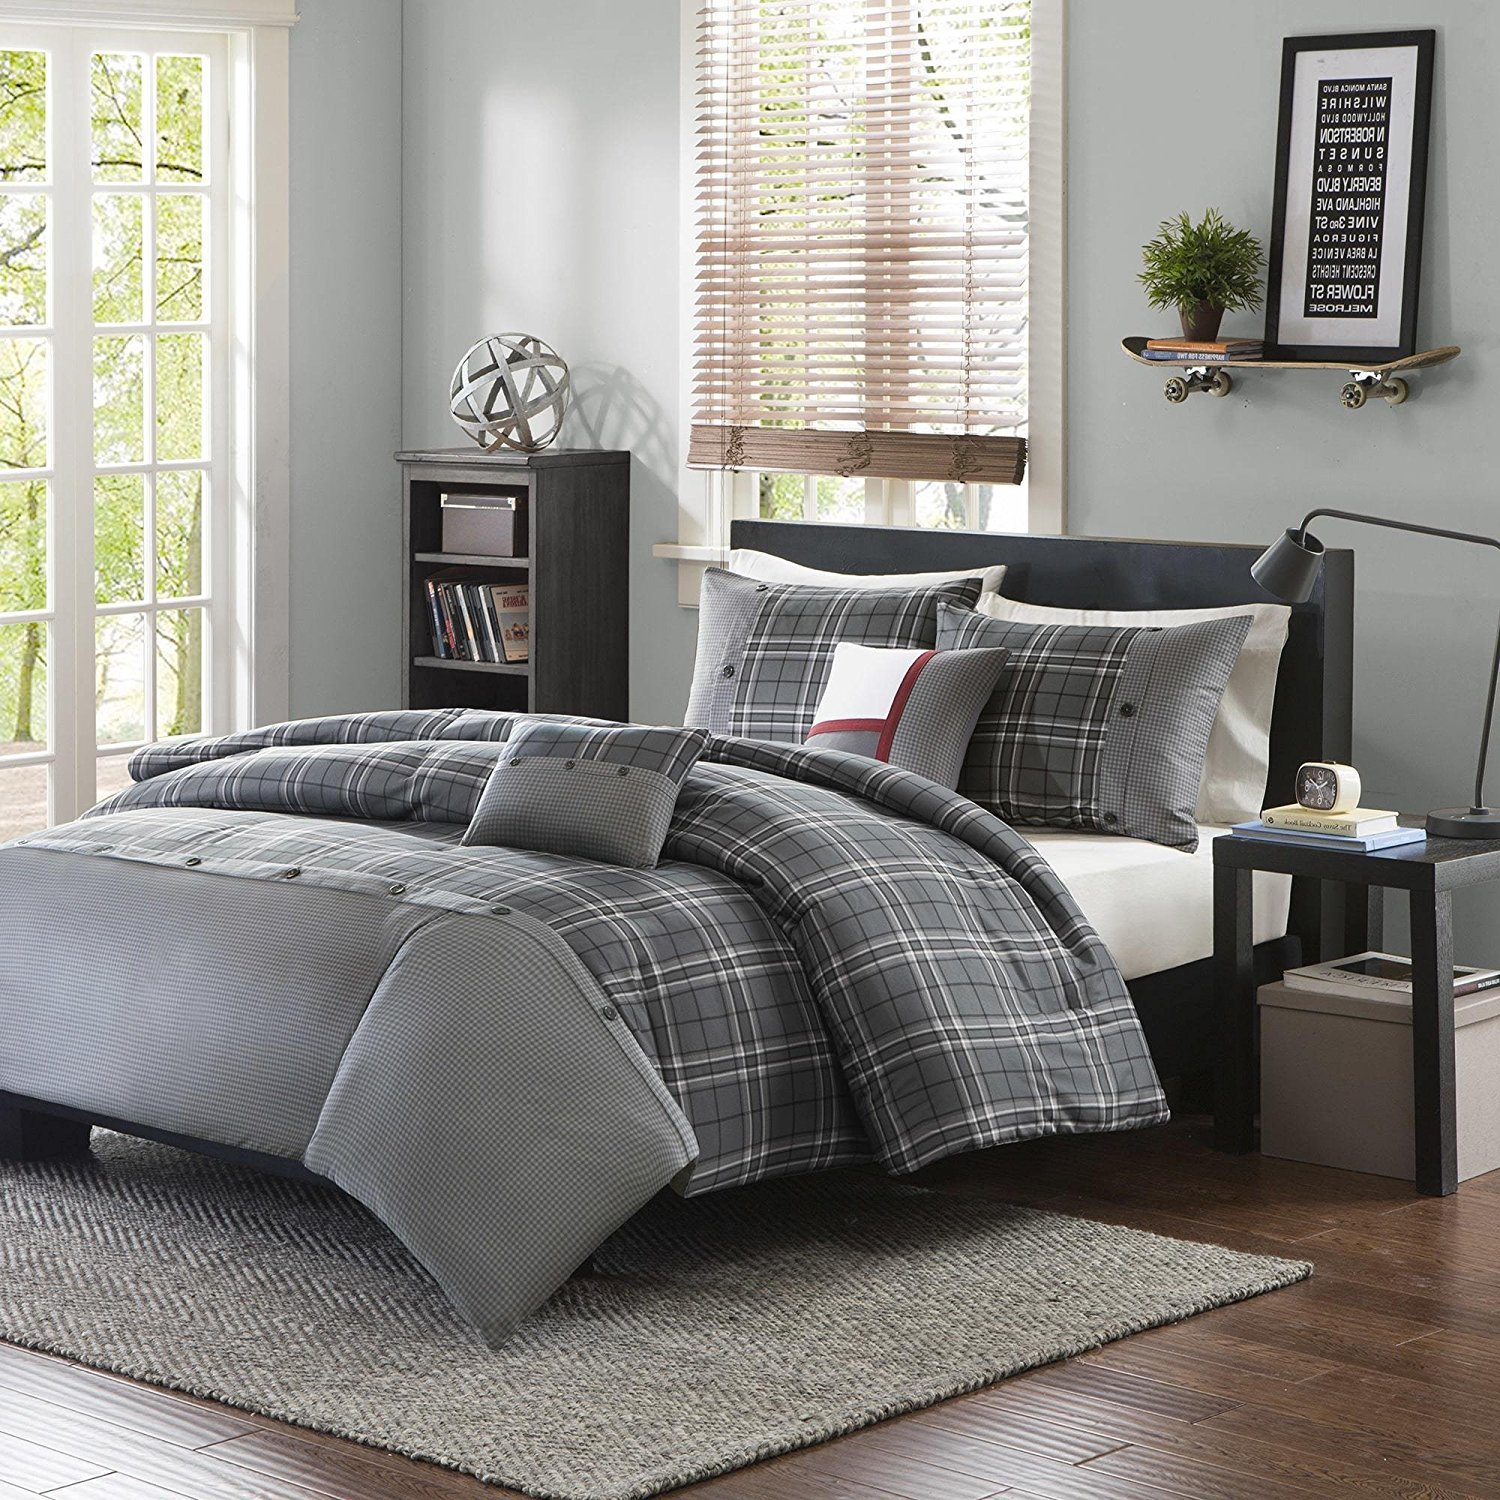 5pc Grey Plaid King/Cal King Size Duvet Cover Set, Vibrant Gray Lumberjack Cabin Country Themed Lodge Checkered Bedding, Woods Tartan Madras Checked Squared Stripes, Polyester